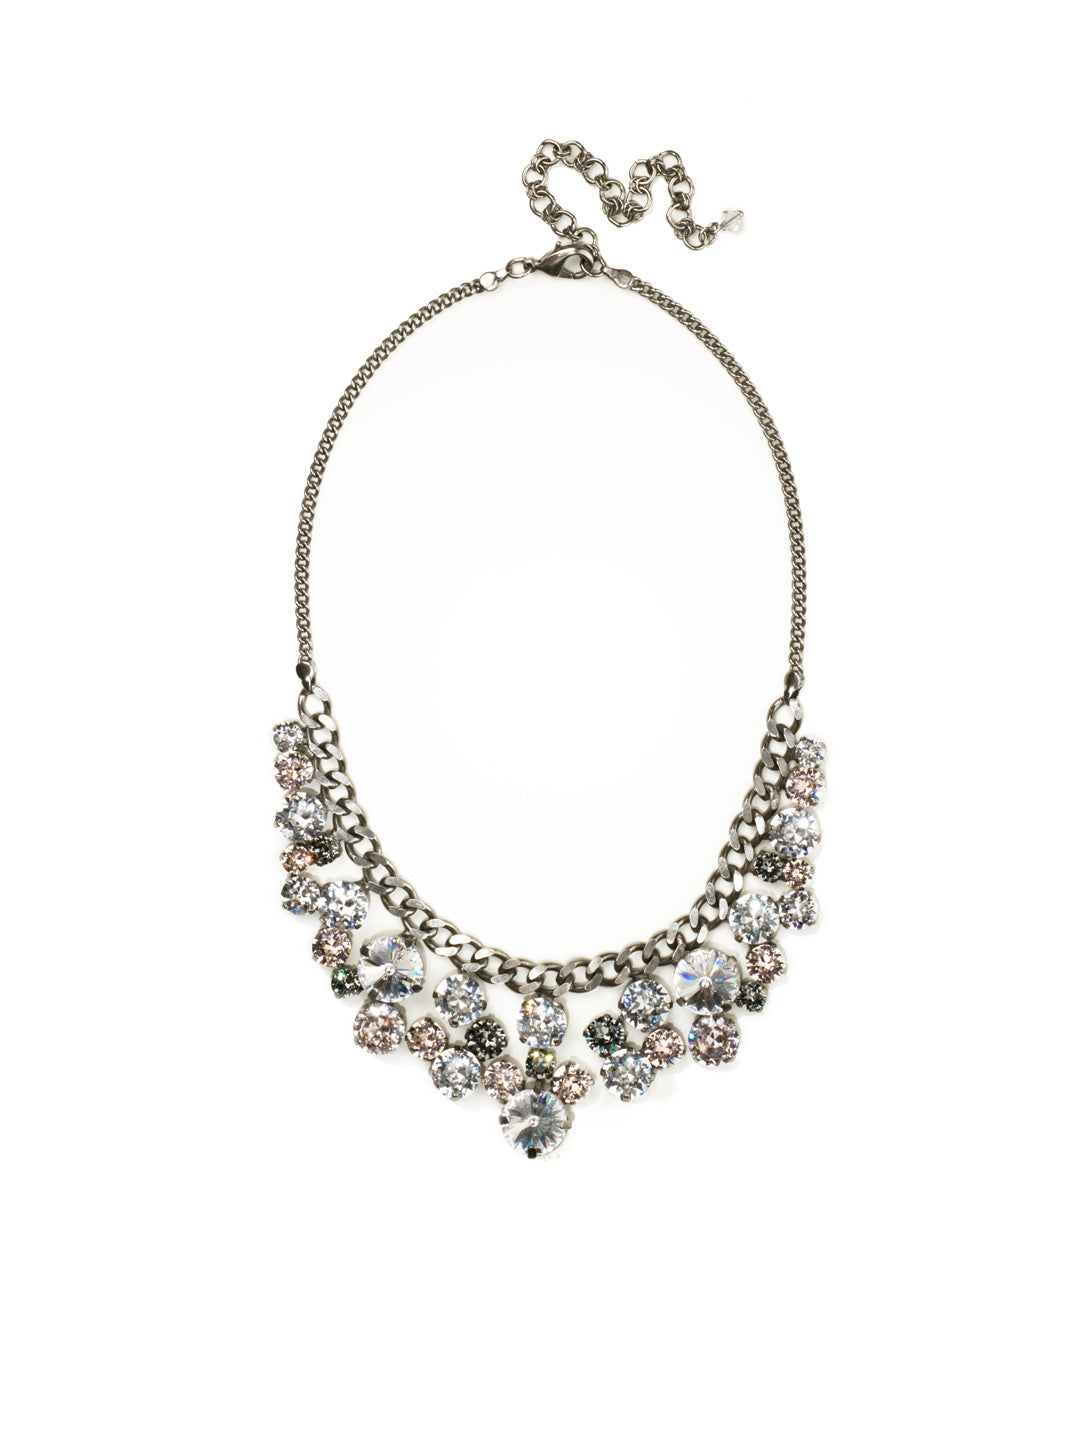 Round Crystal Cluster Bib Necklace - NCW10ASSNB